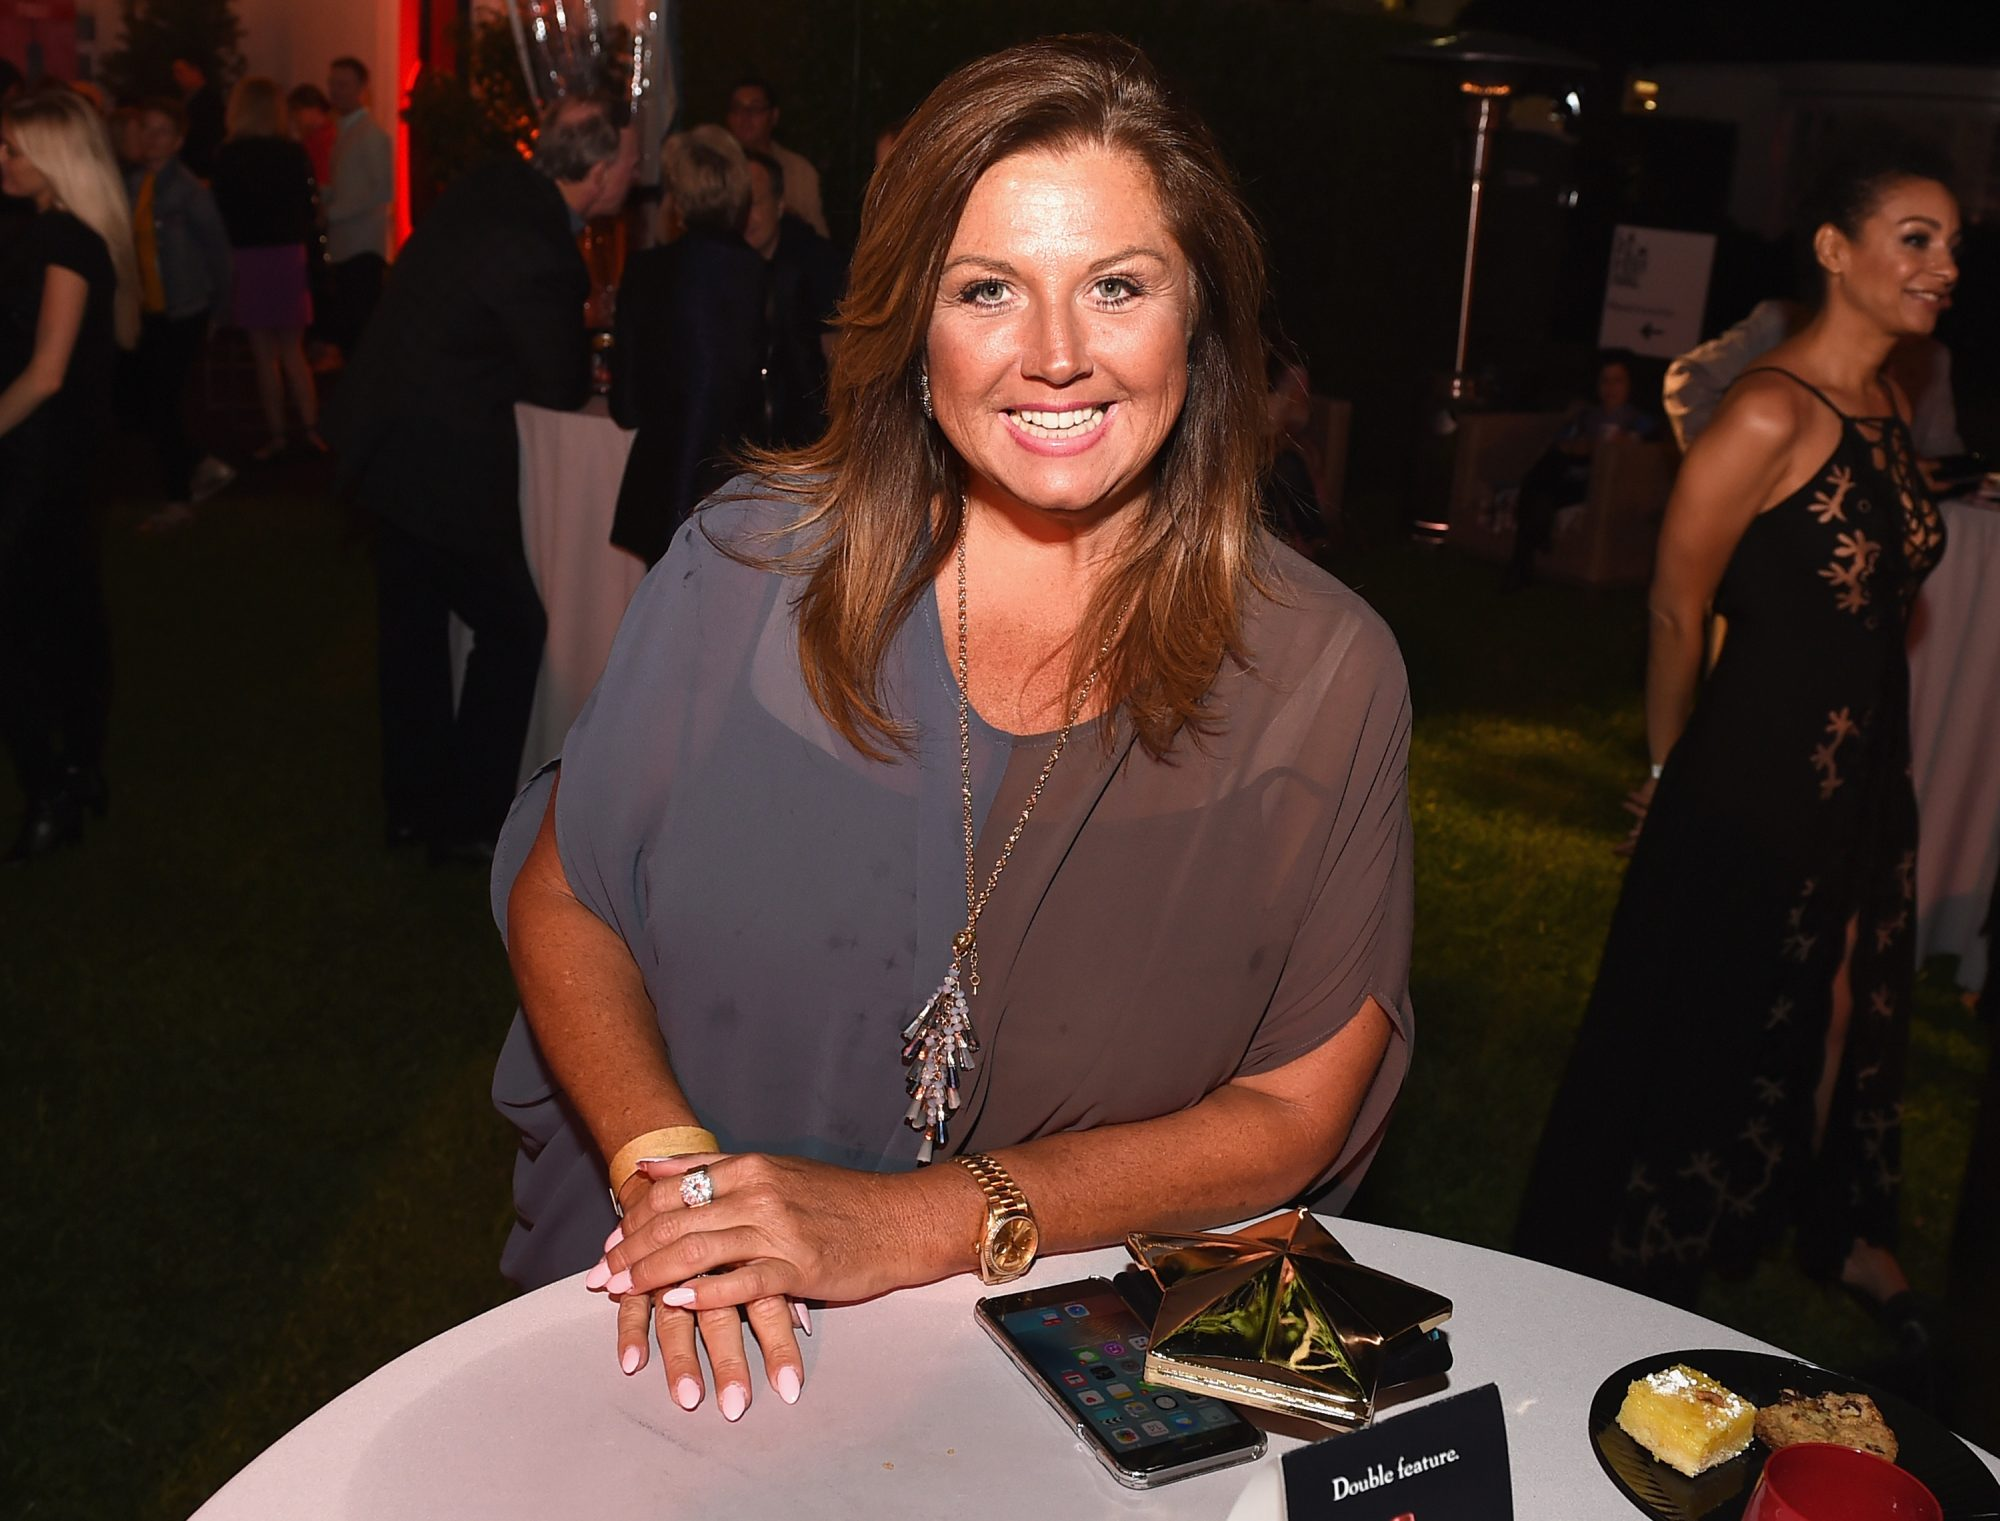 Slimmed-Down Abby Lee Miller Addresses Her Prison Release Date: 'I've Tried to Better Myself'